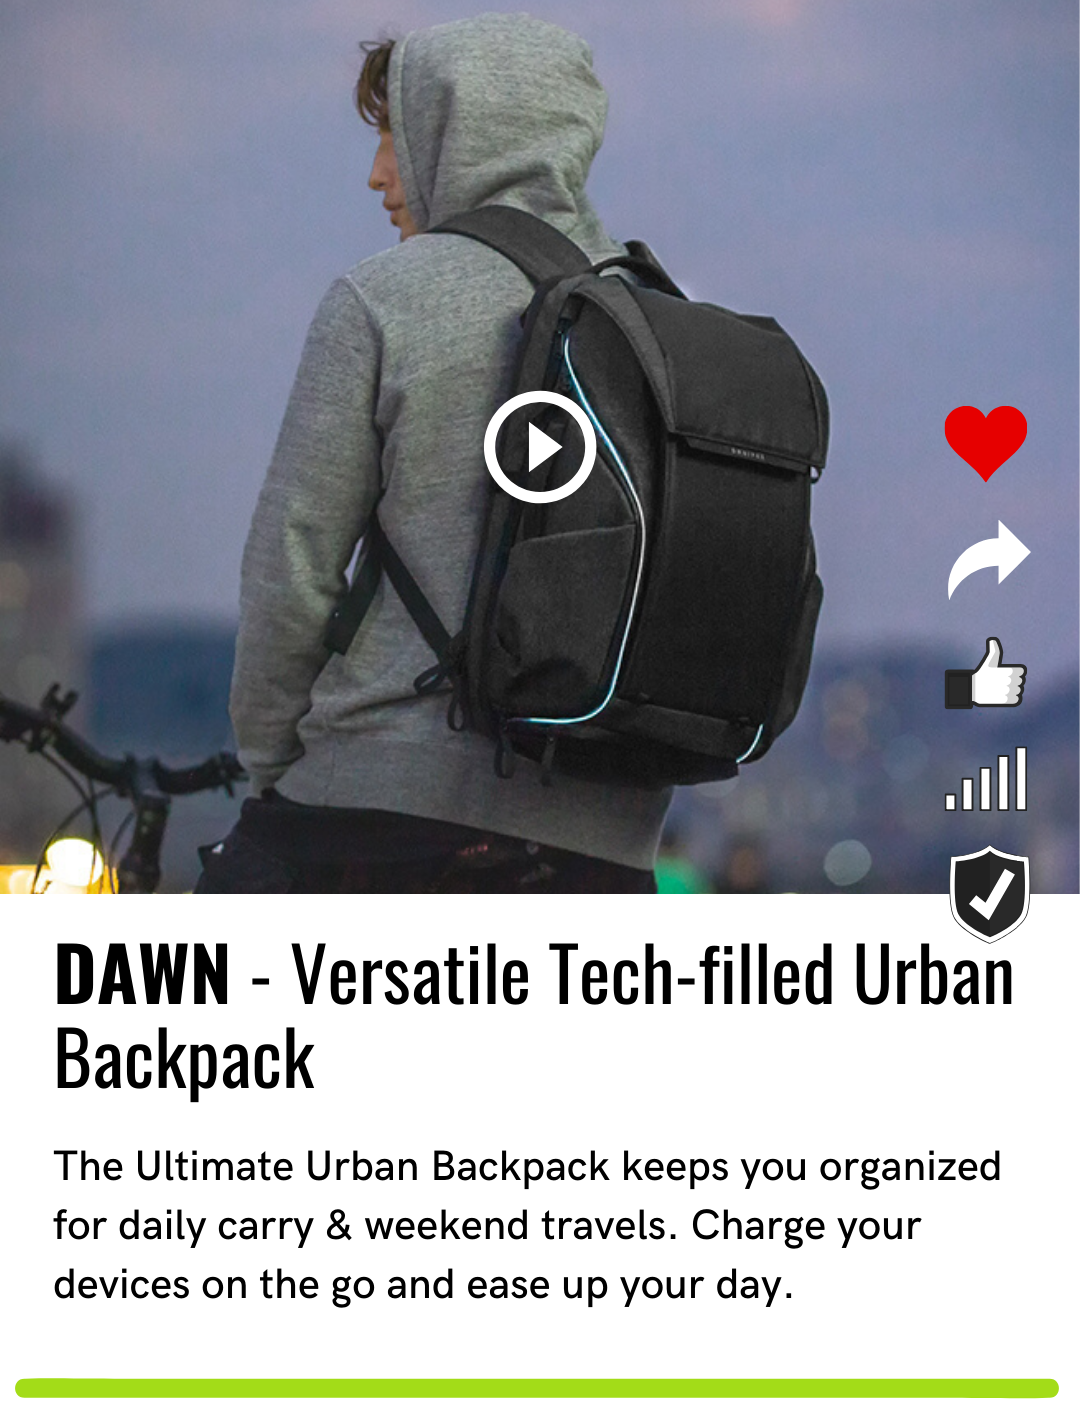 DAWN - Versatile Tech-filled Urban Backpack